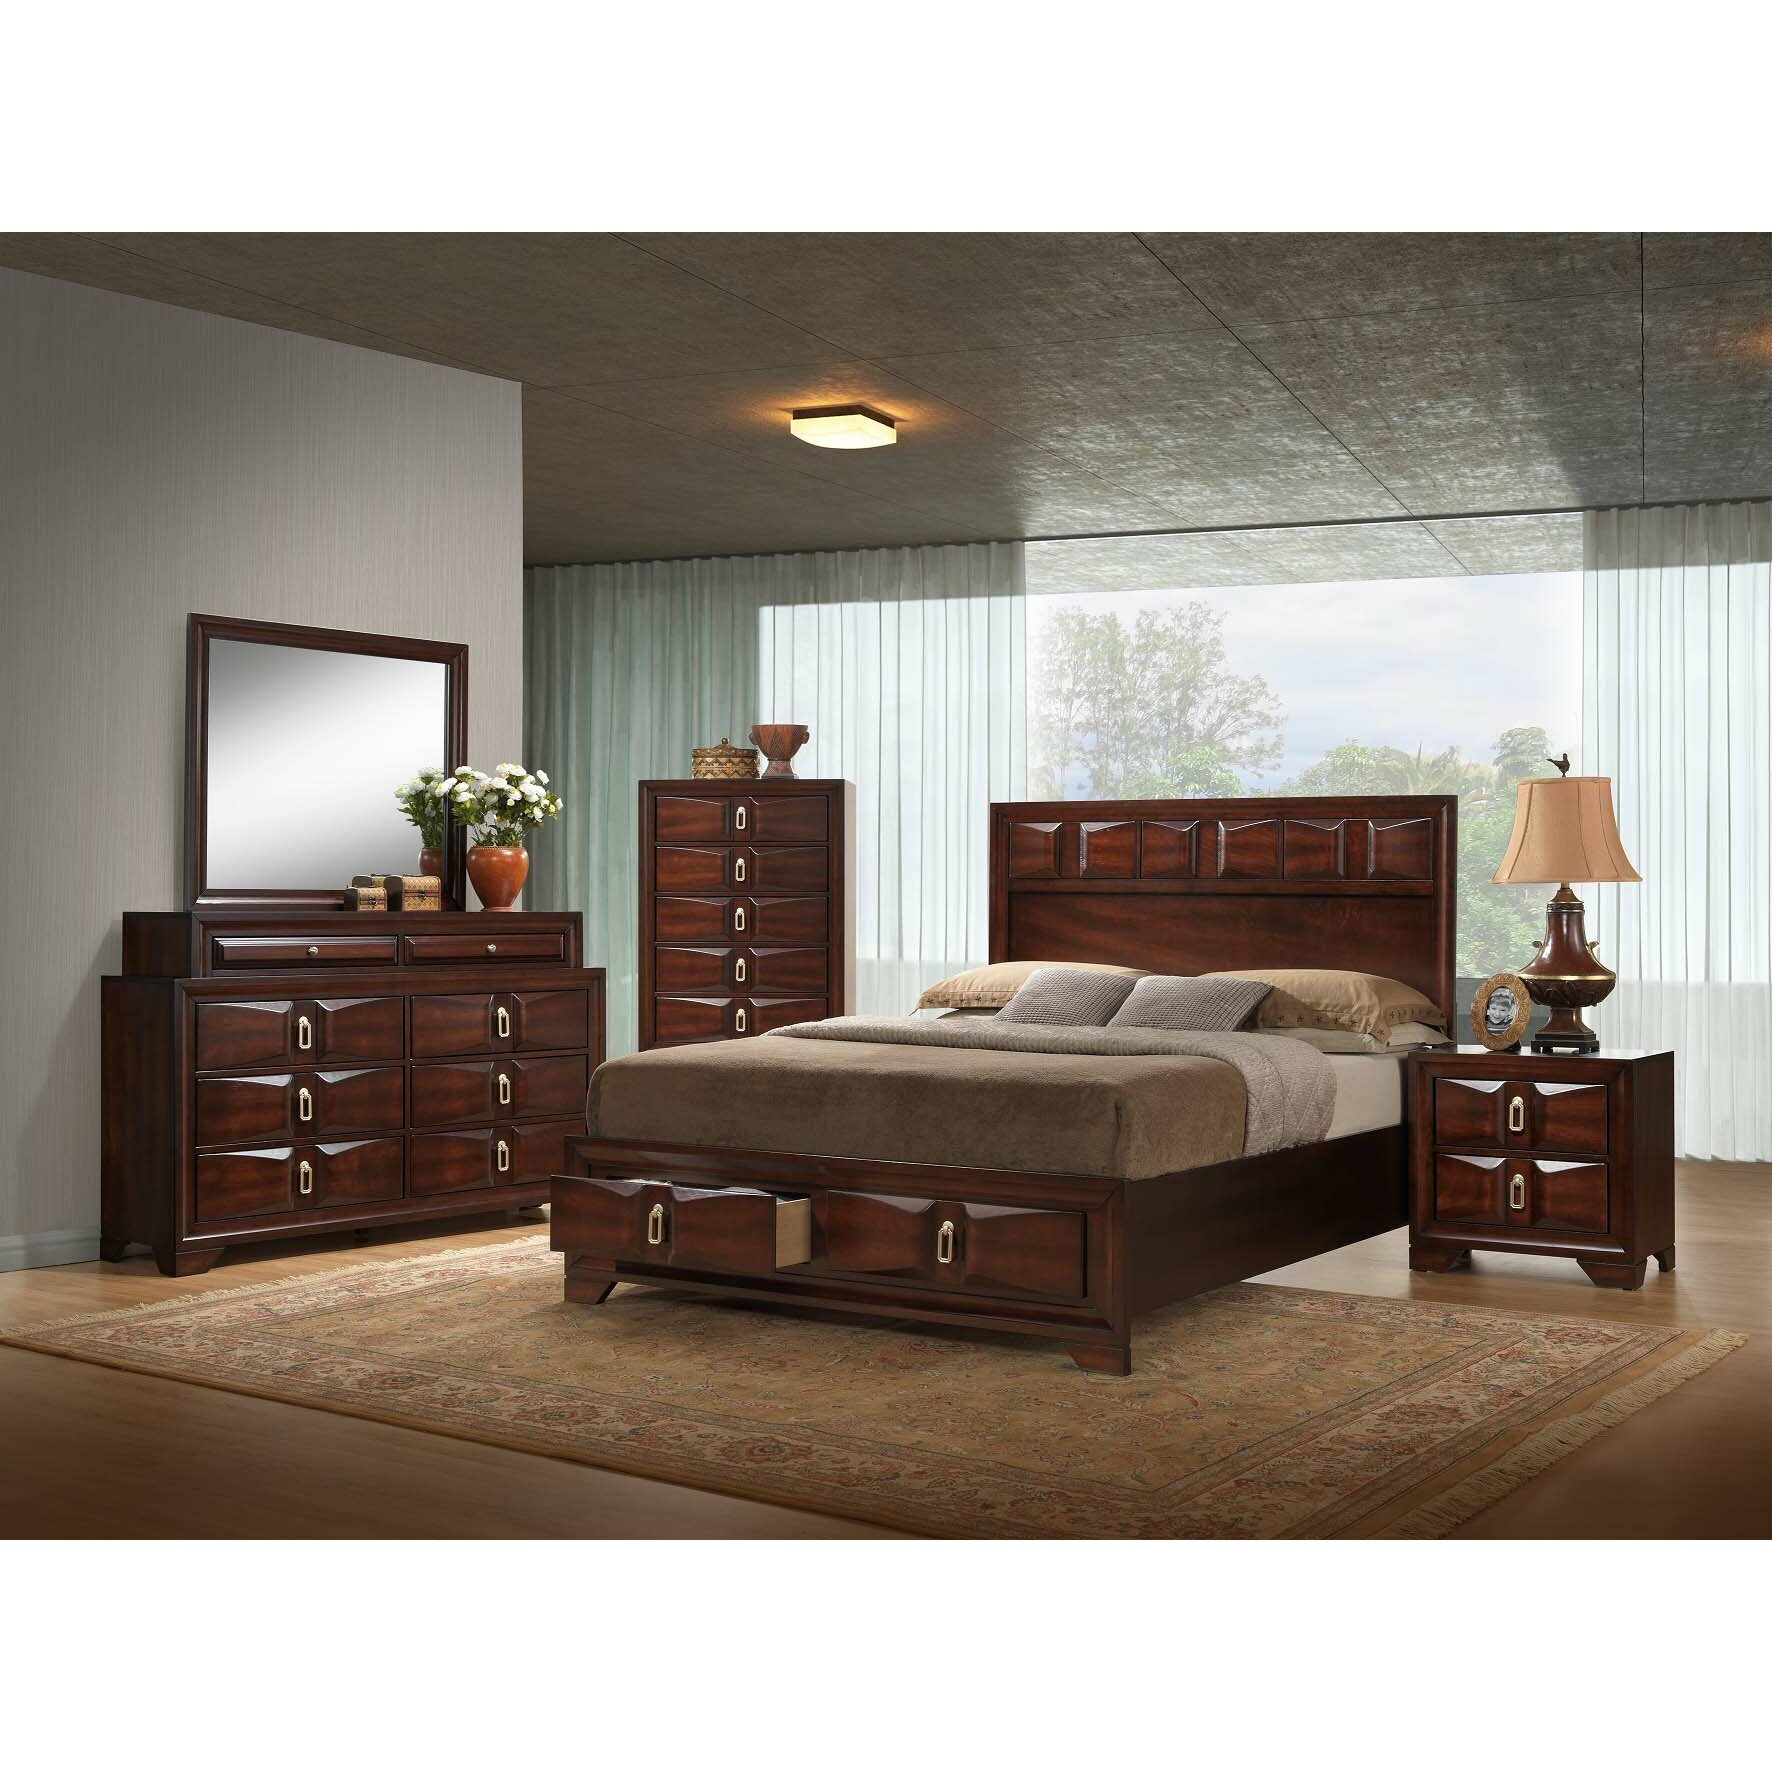 Simmons casegoods roswell panel customizable bedroom set for Complete bedroom packages